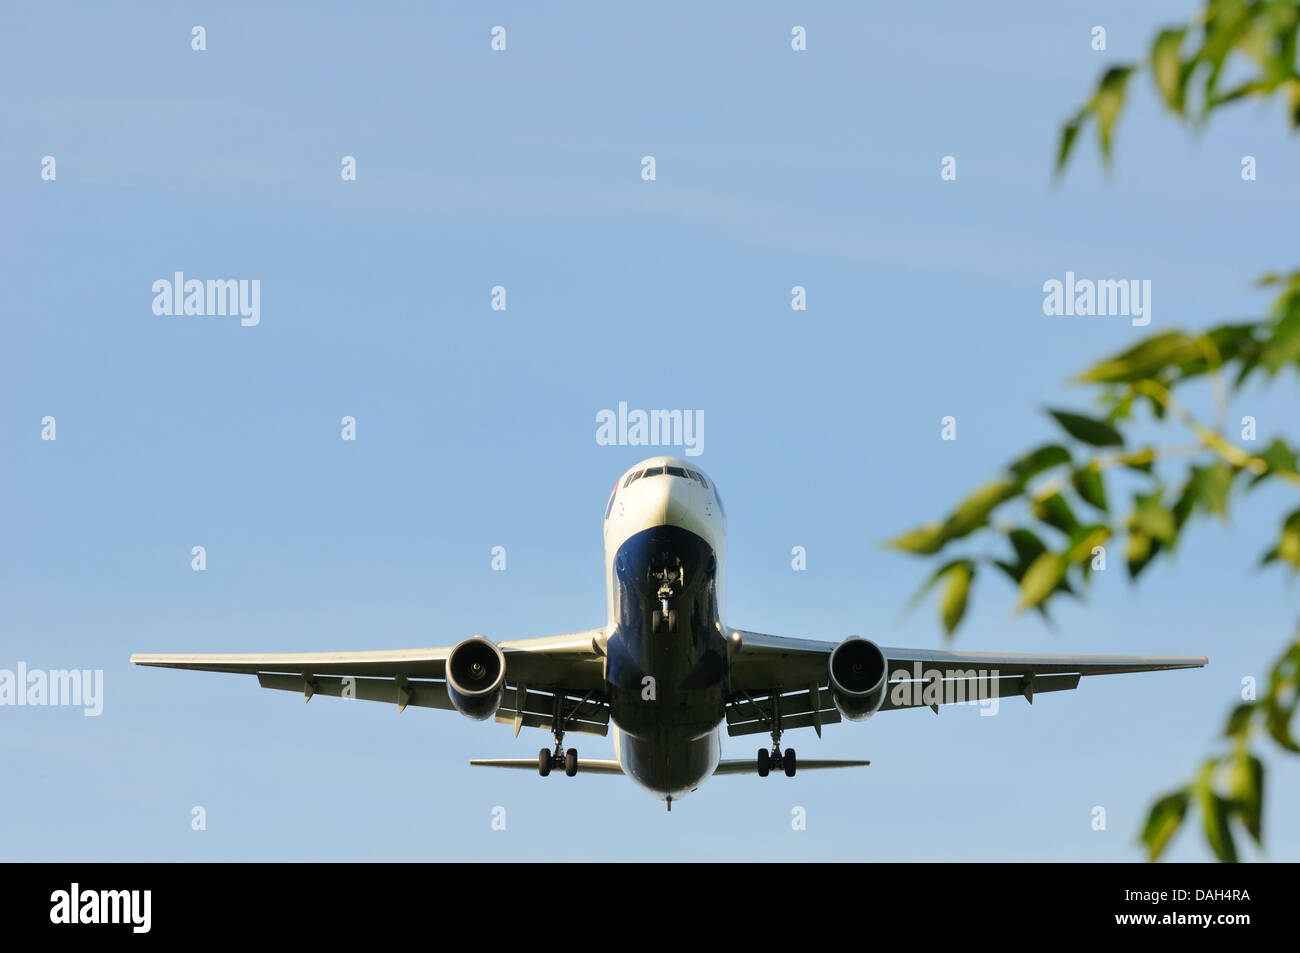 A large aircraft seconds from landing - Stock Image